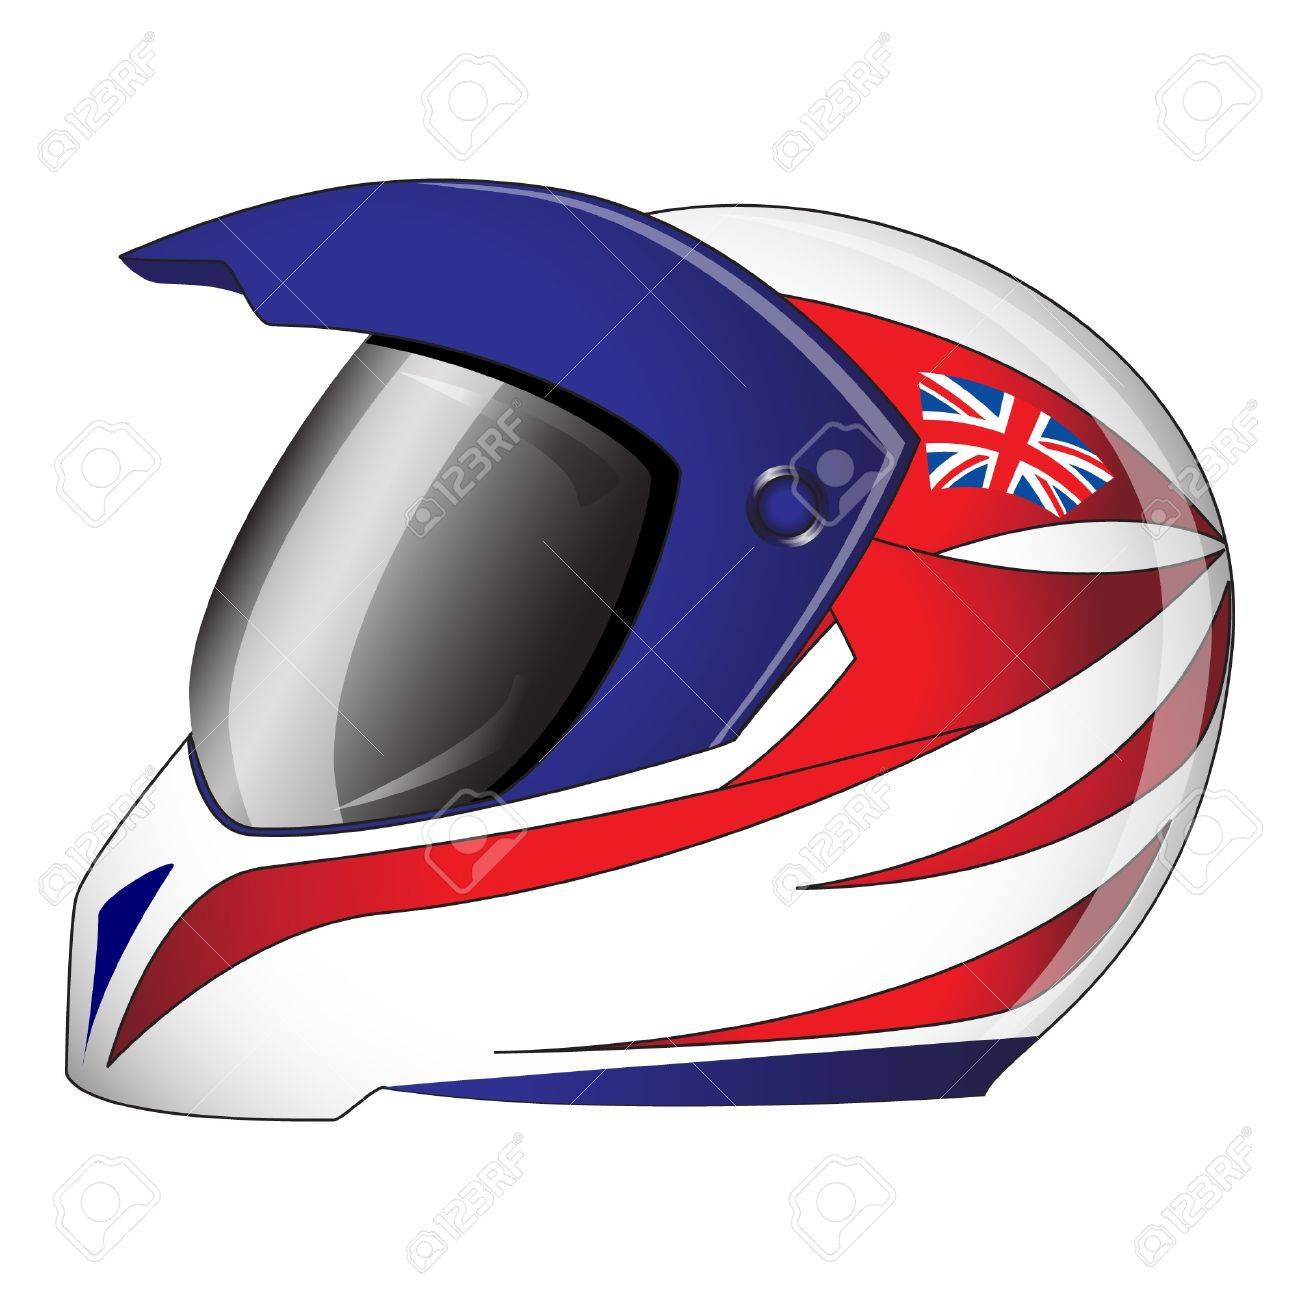 Motorcycle helmet with red, white and blue Union Jack theme British  flag. EPS10 vector format. Stock Vector - 10311404